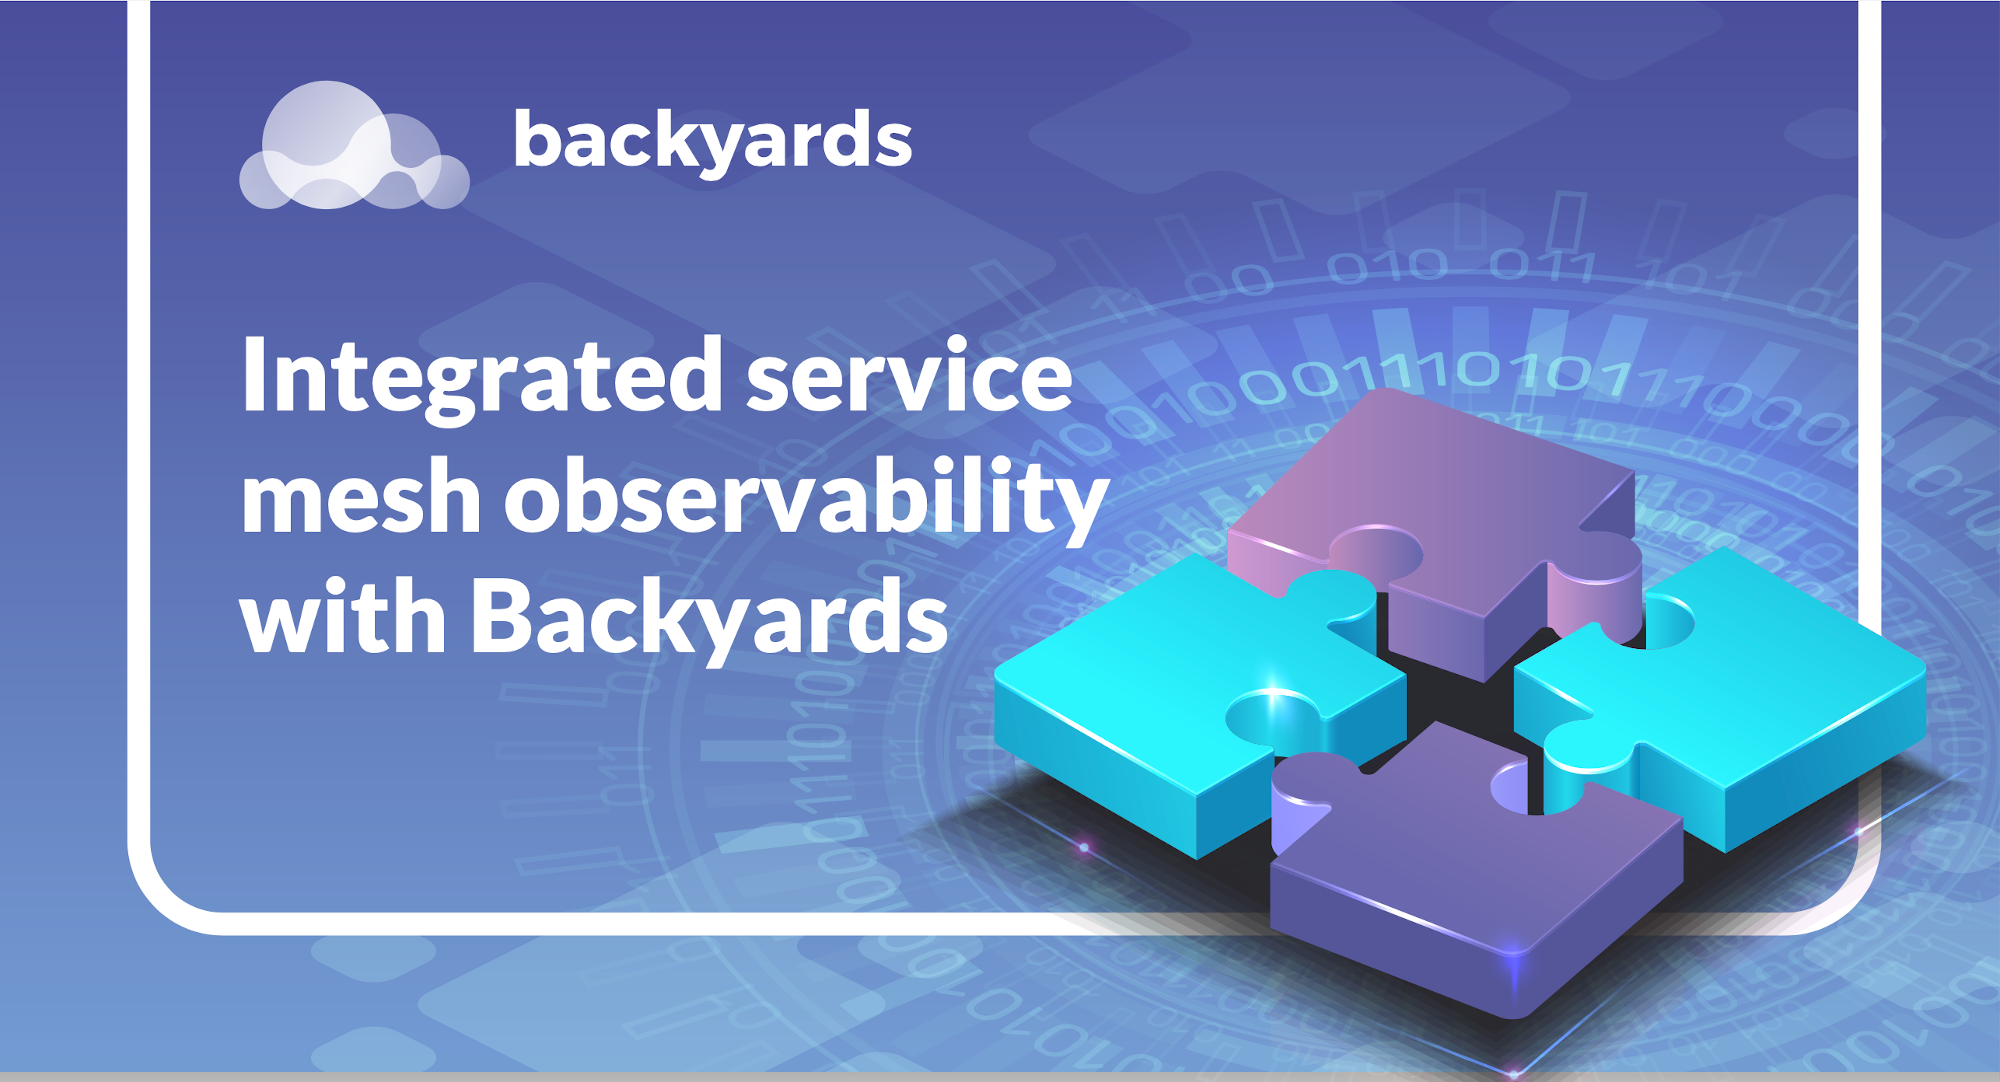 by-observability-use-case